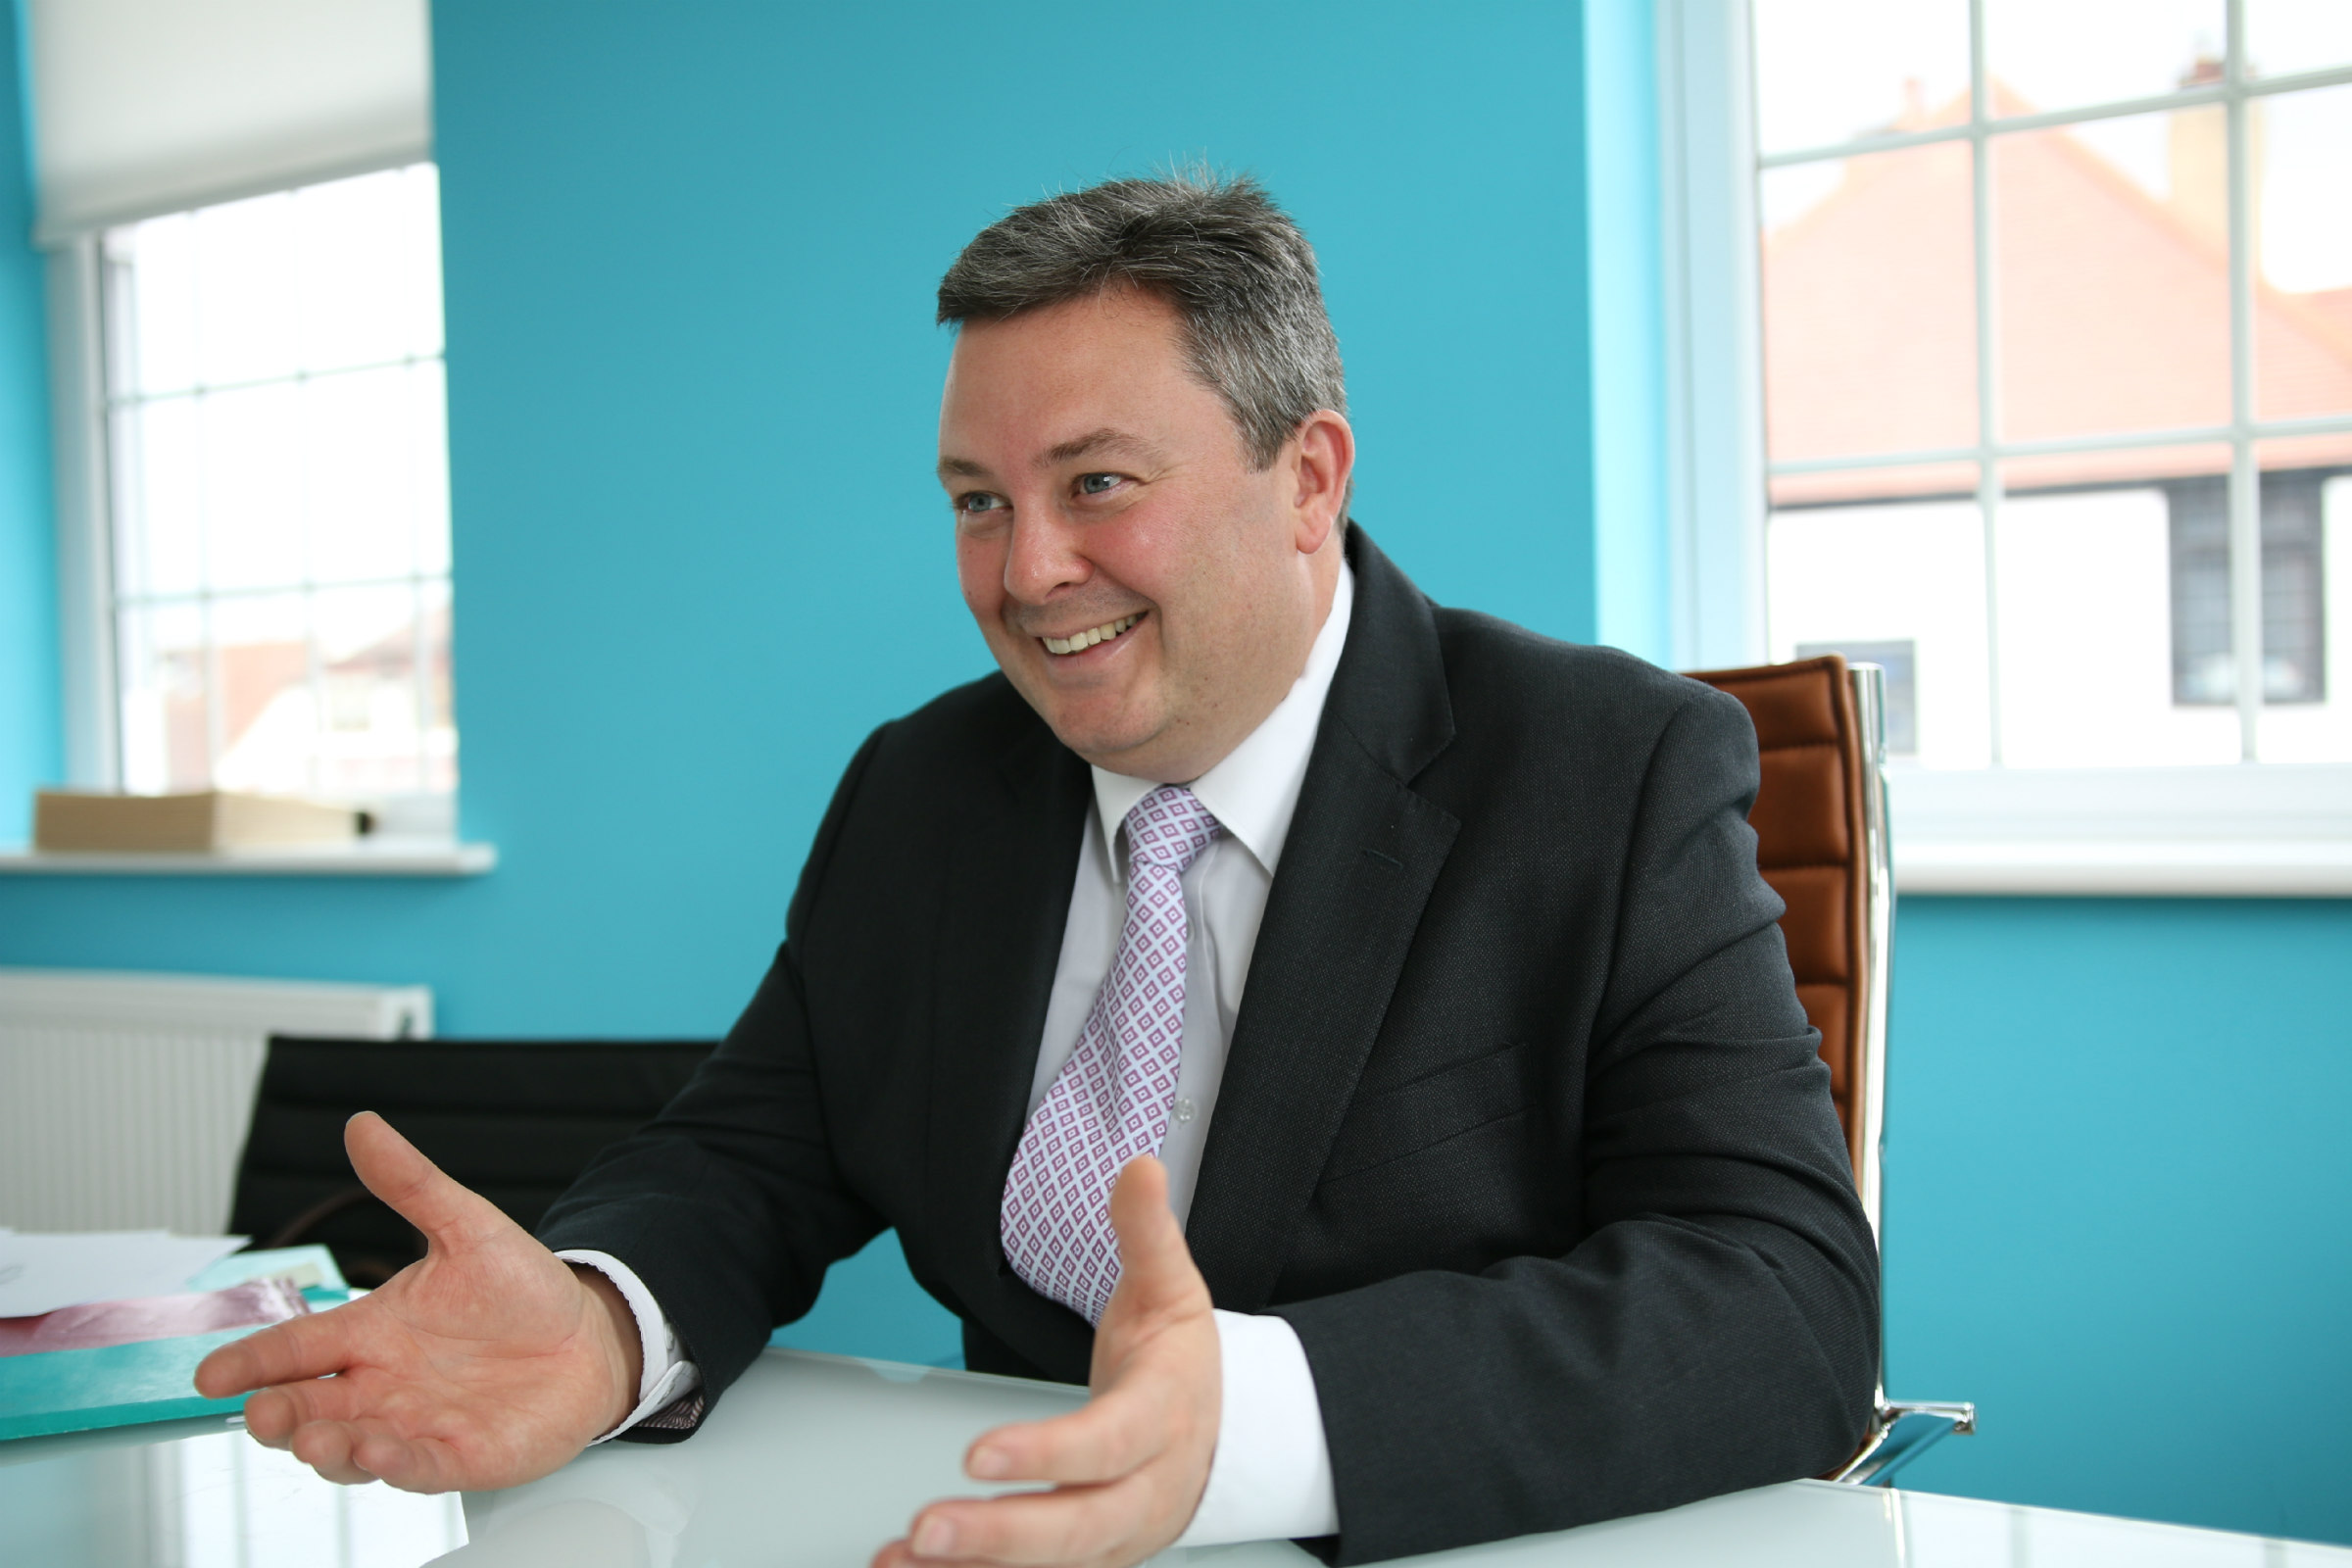 Family Law Solicitor Richard Busby joins Giles Wilson